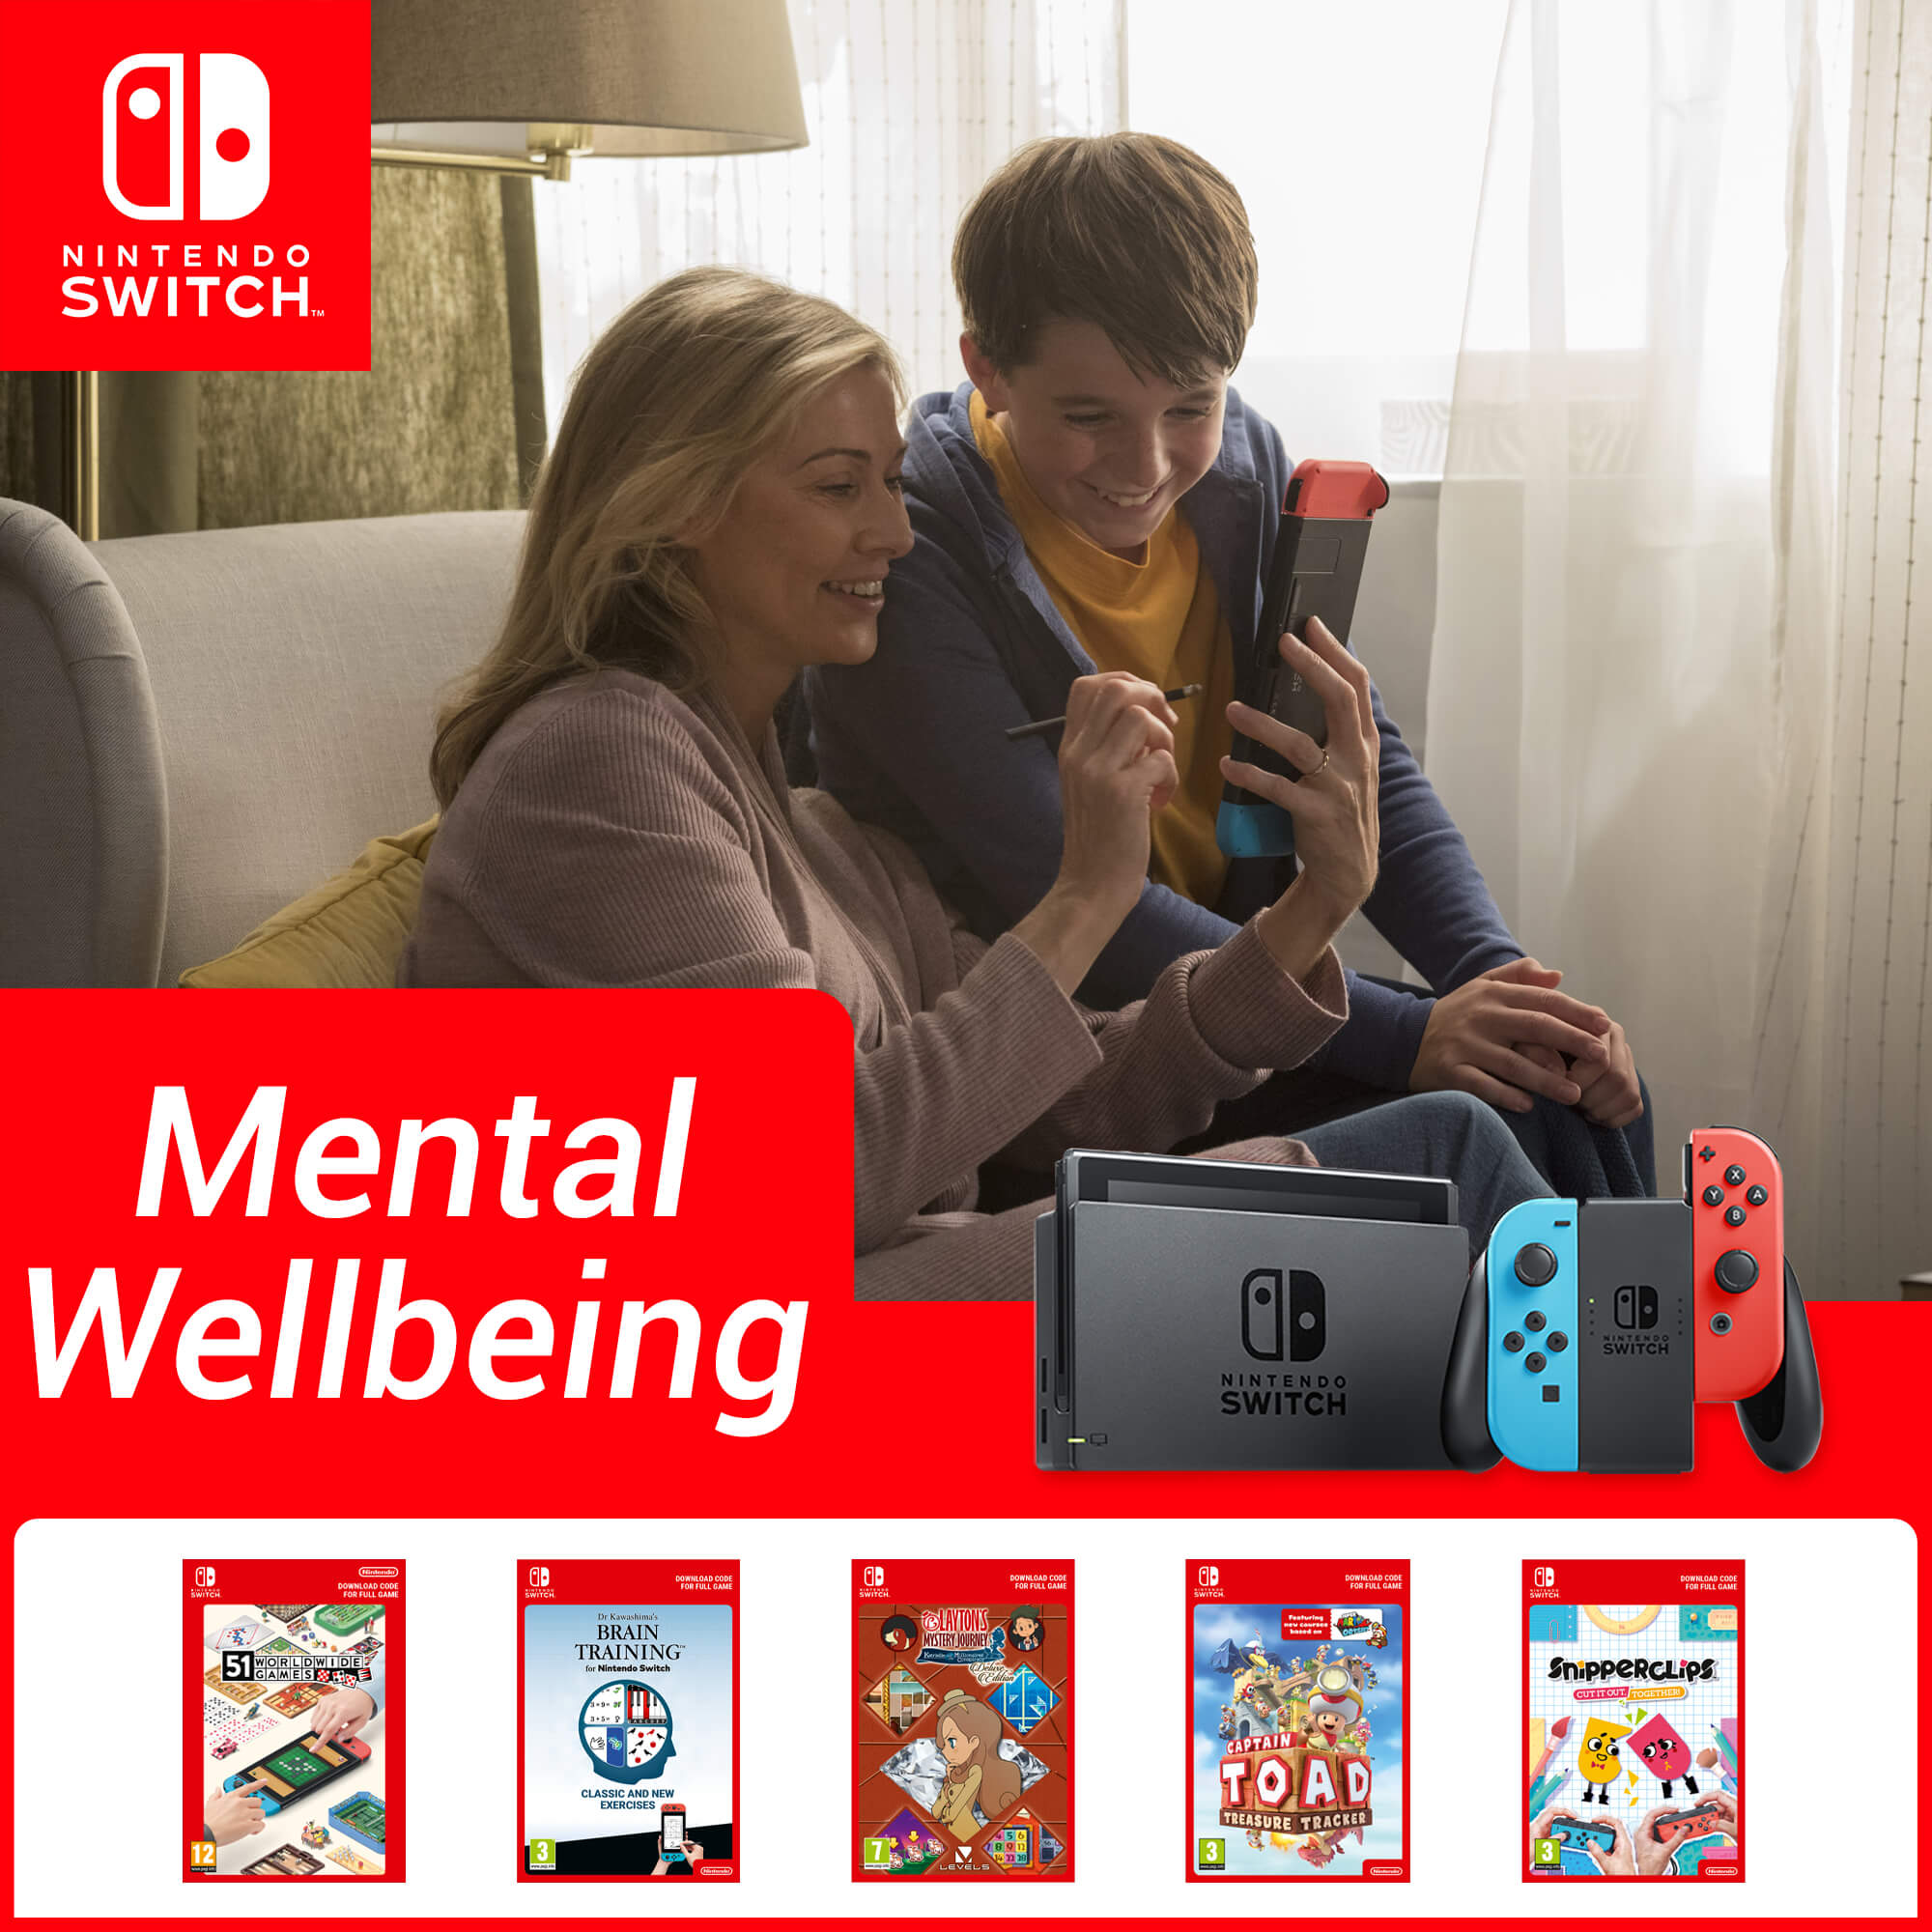 Mental Wellbeing with Nintendo Switch